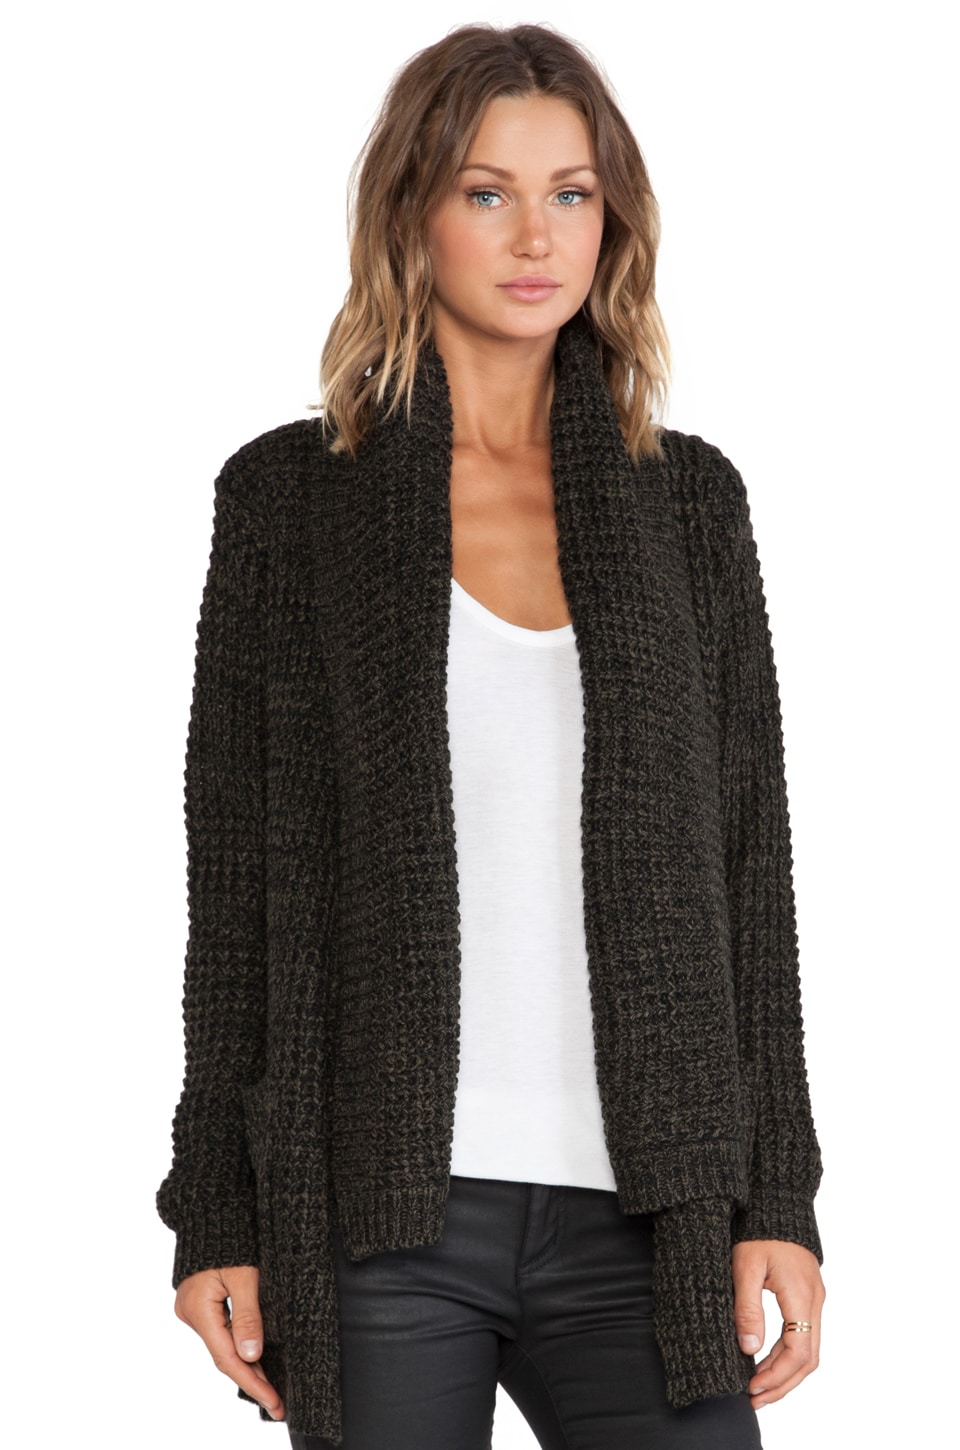 John & Jenn by Line Manon Cardigan in Dark Foliage